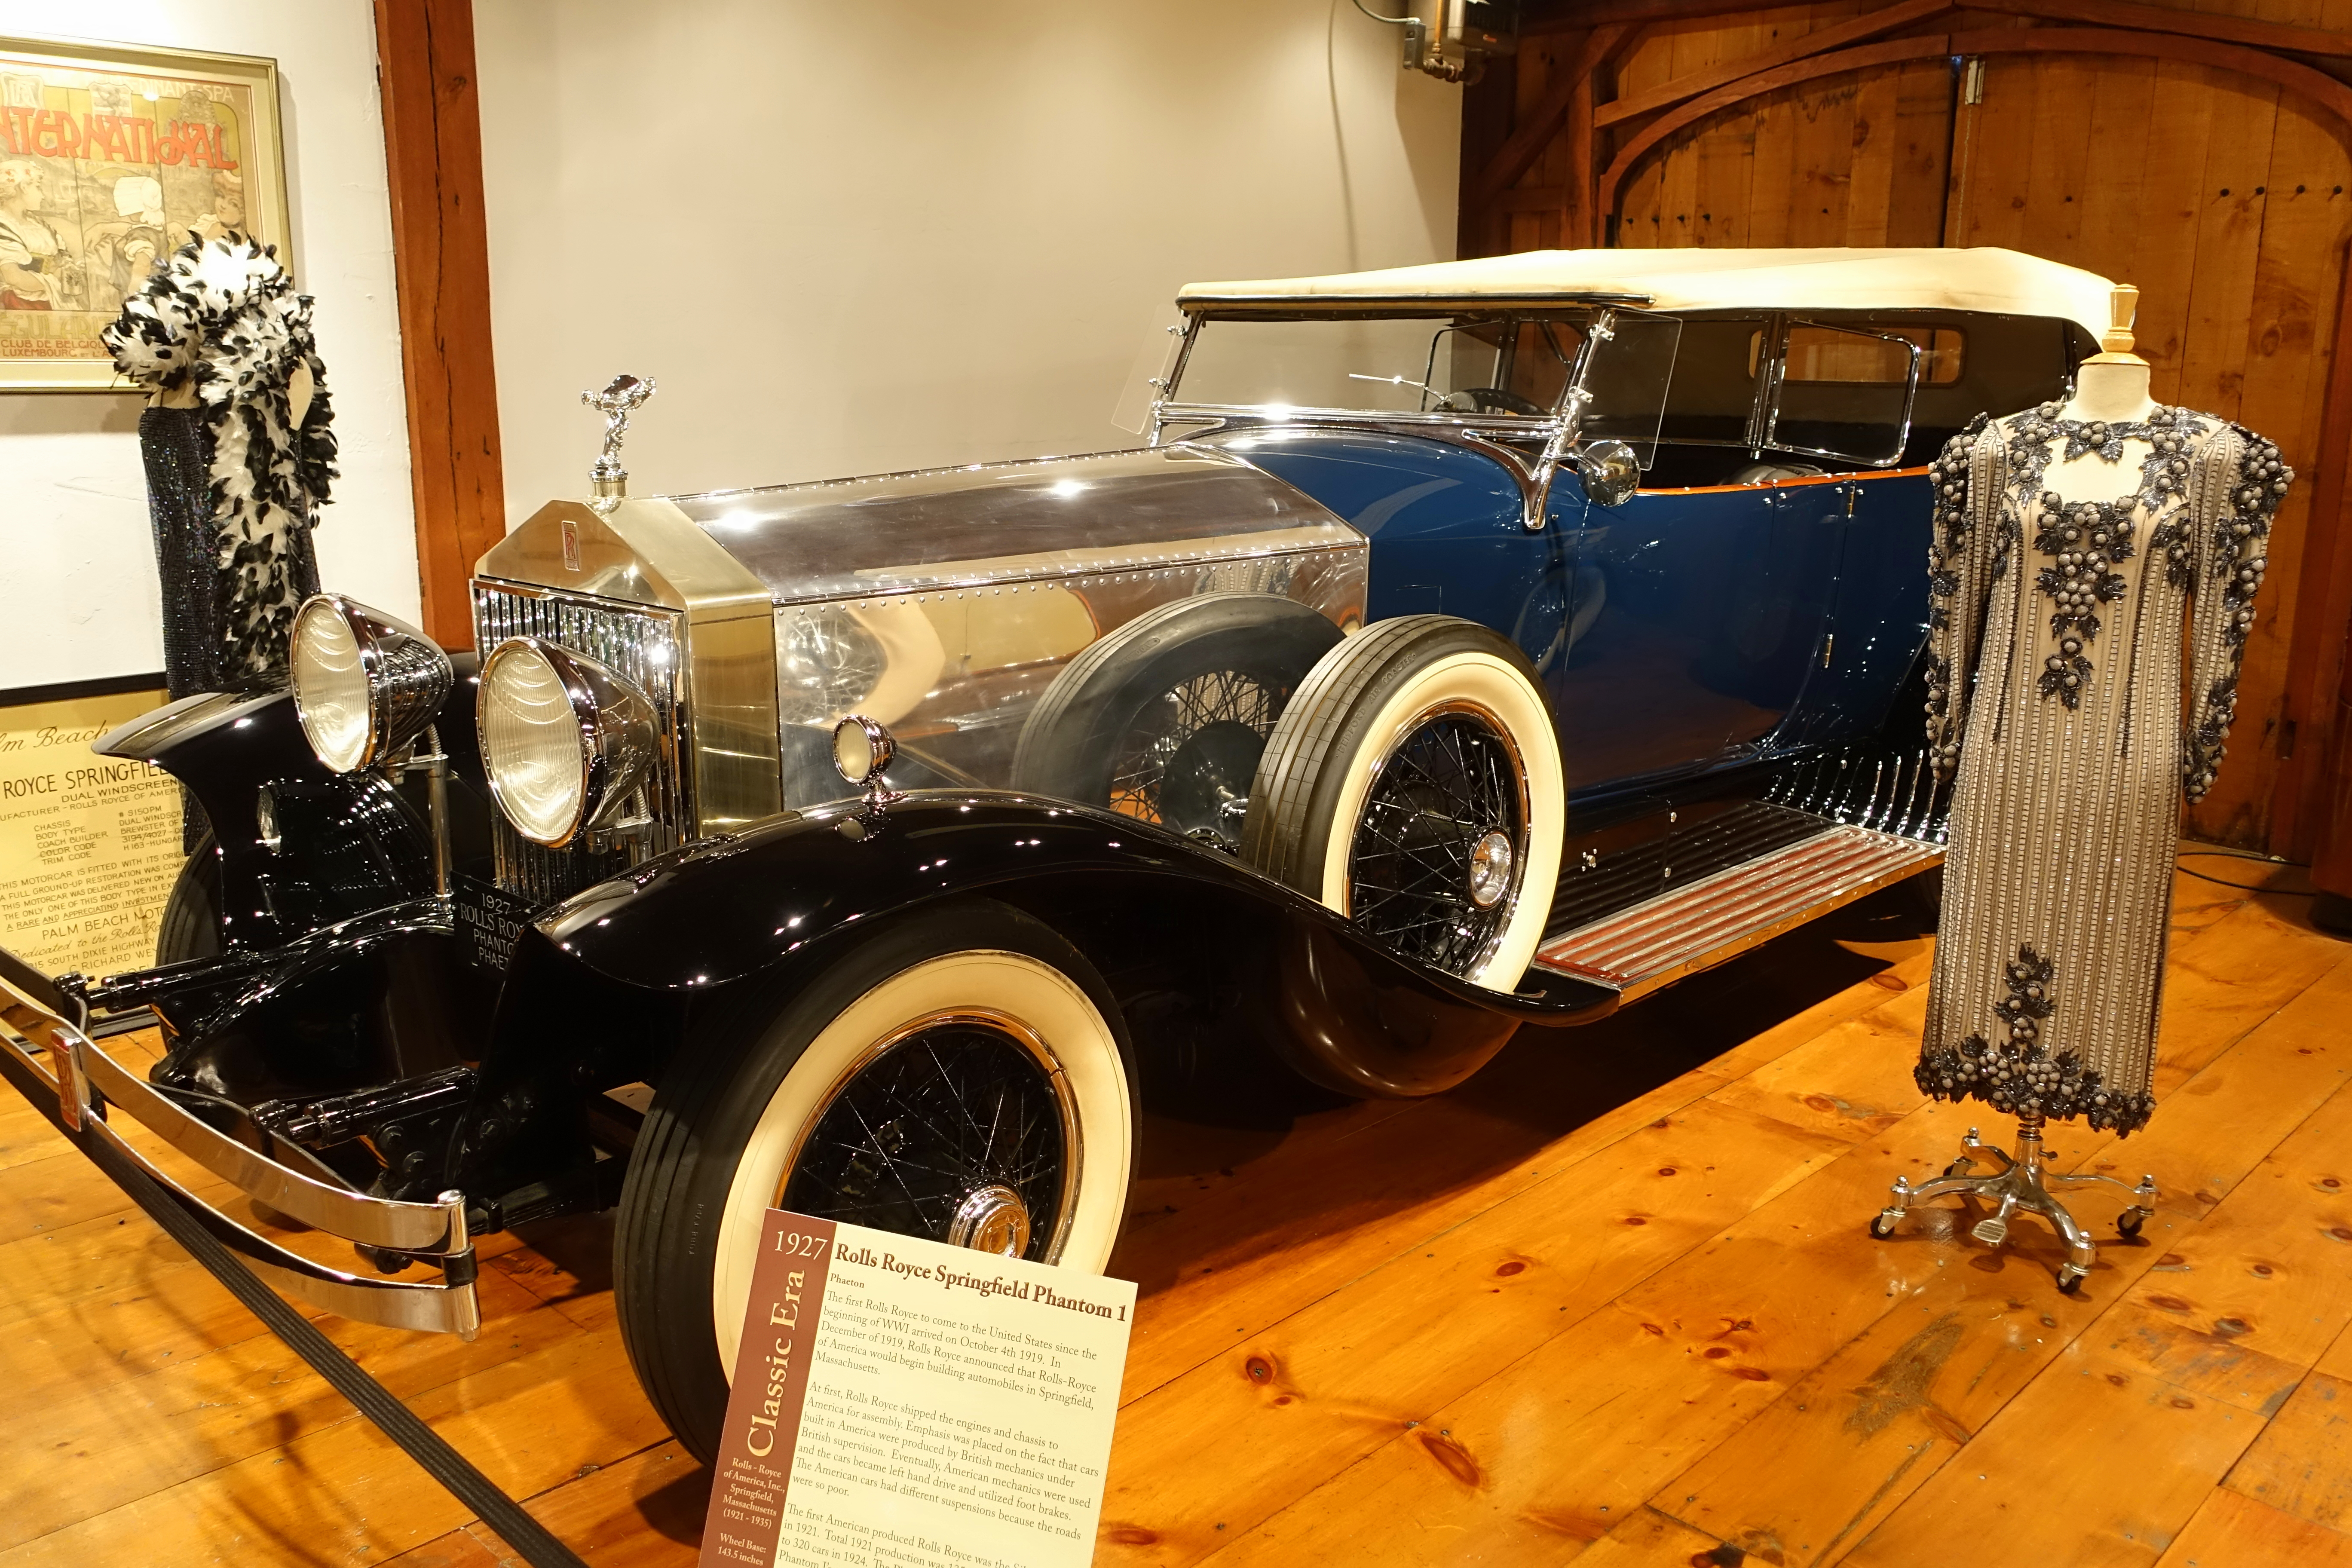 File:1927 Rolls Royce Springfield Phantom 1 - Collings